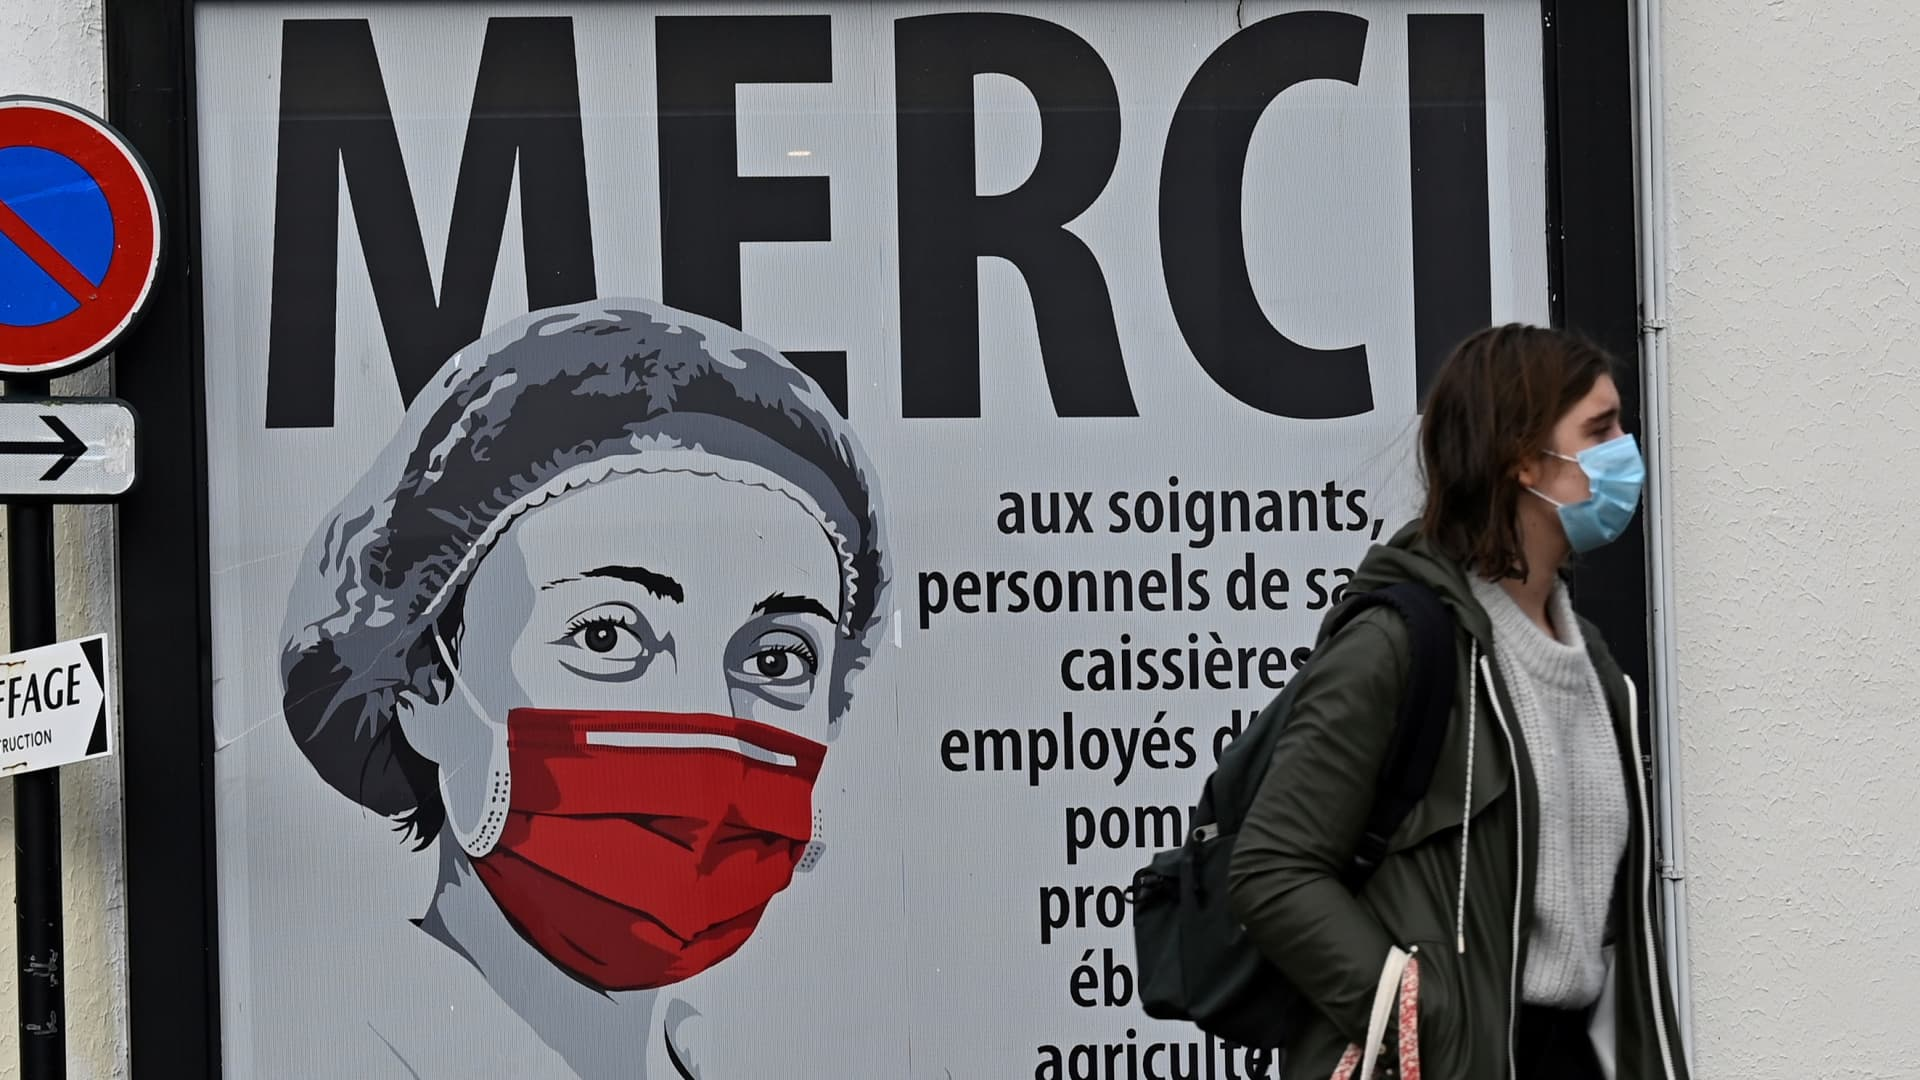 A woman walks past a poster featuring a nurse wearing a protective mask and thanking all the professions that have supported the COVID-19 coronavirus pandemic on a street in Rennes, western France on November 02, 2020, as France is under a new general lockdown to curb the spread of the Covid-19 novel coronavirus.